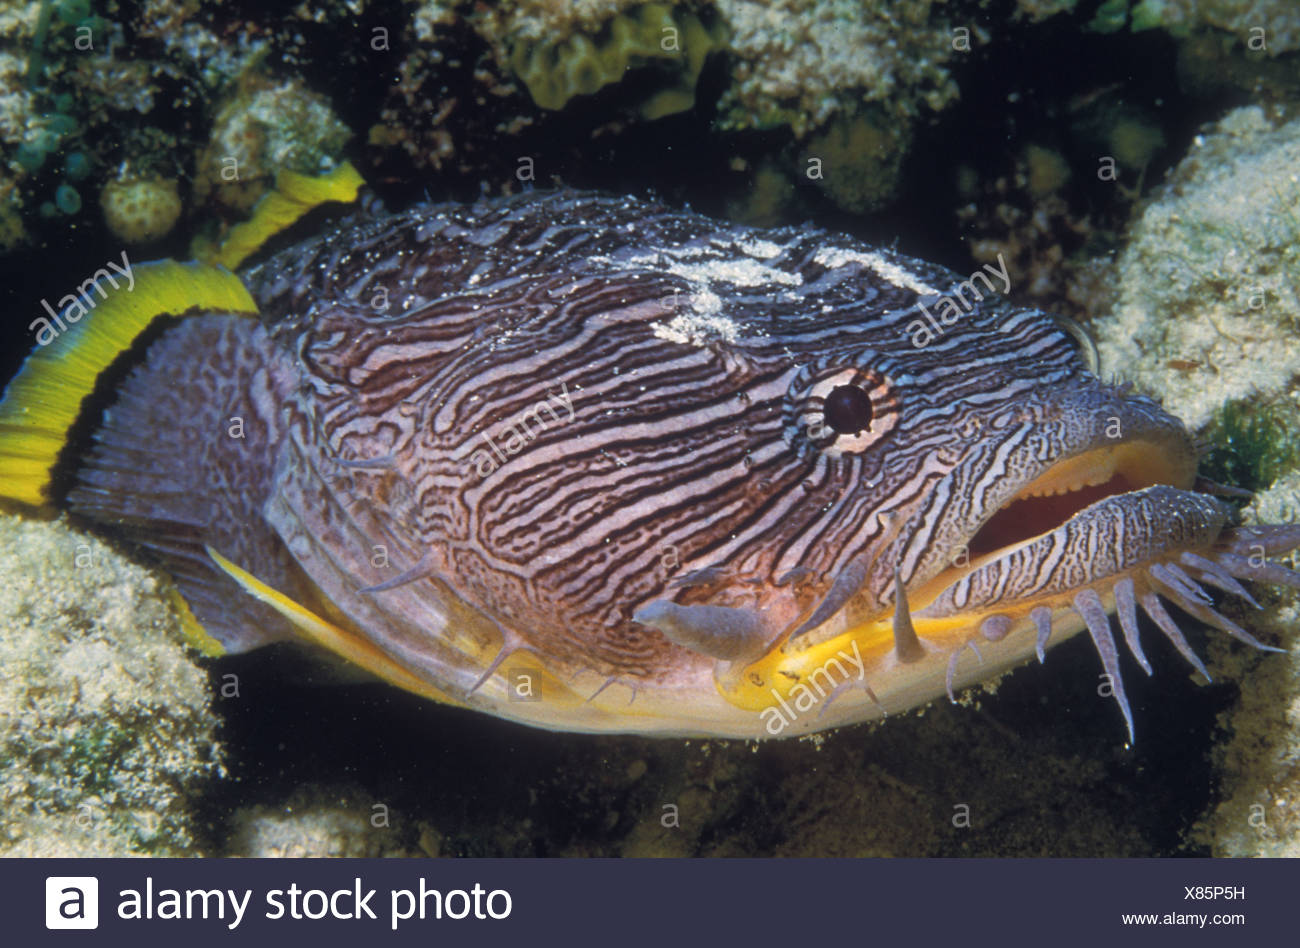 SPLENDID TOADFISH SANOPUS SPLENDIDUS COZUMEL MEXICO - Stock Image